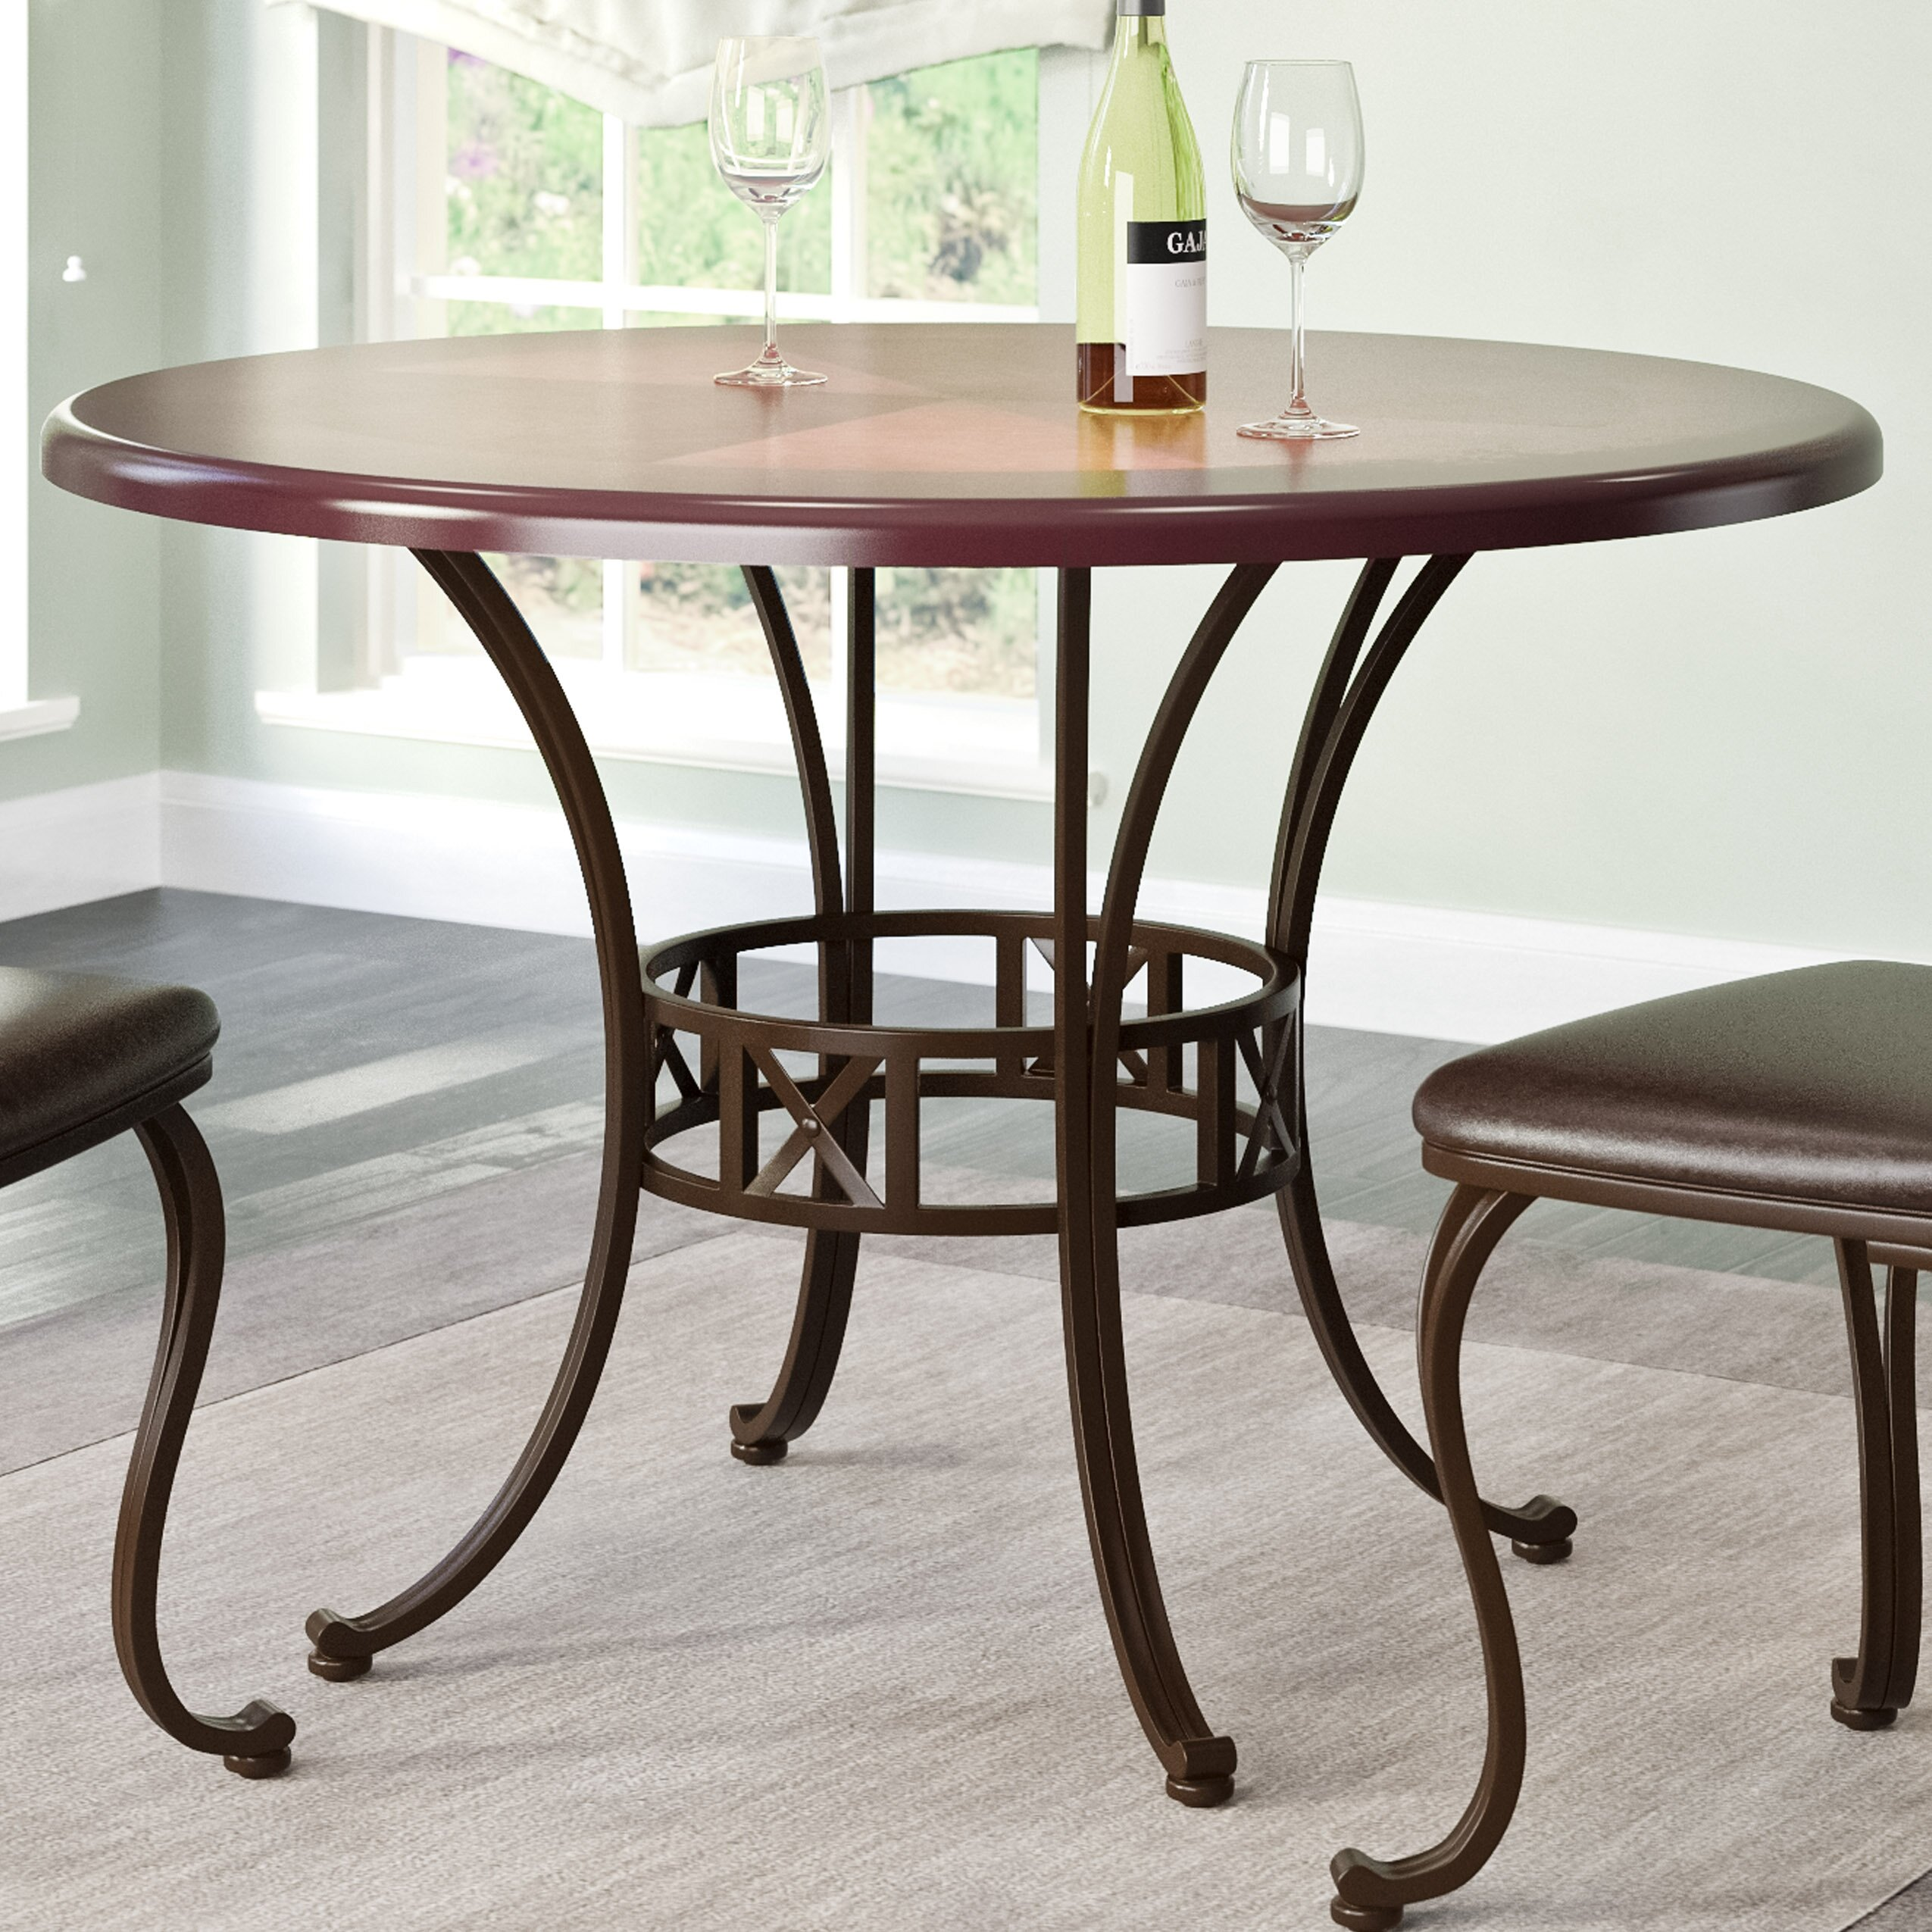 Red barrel studio gravity dining table reviews wayfair for Red dining table